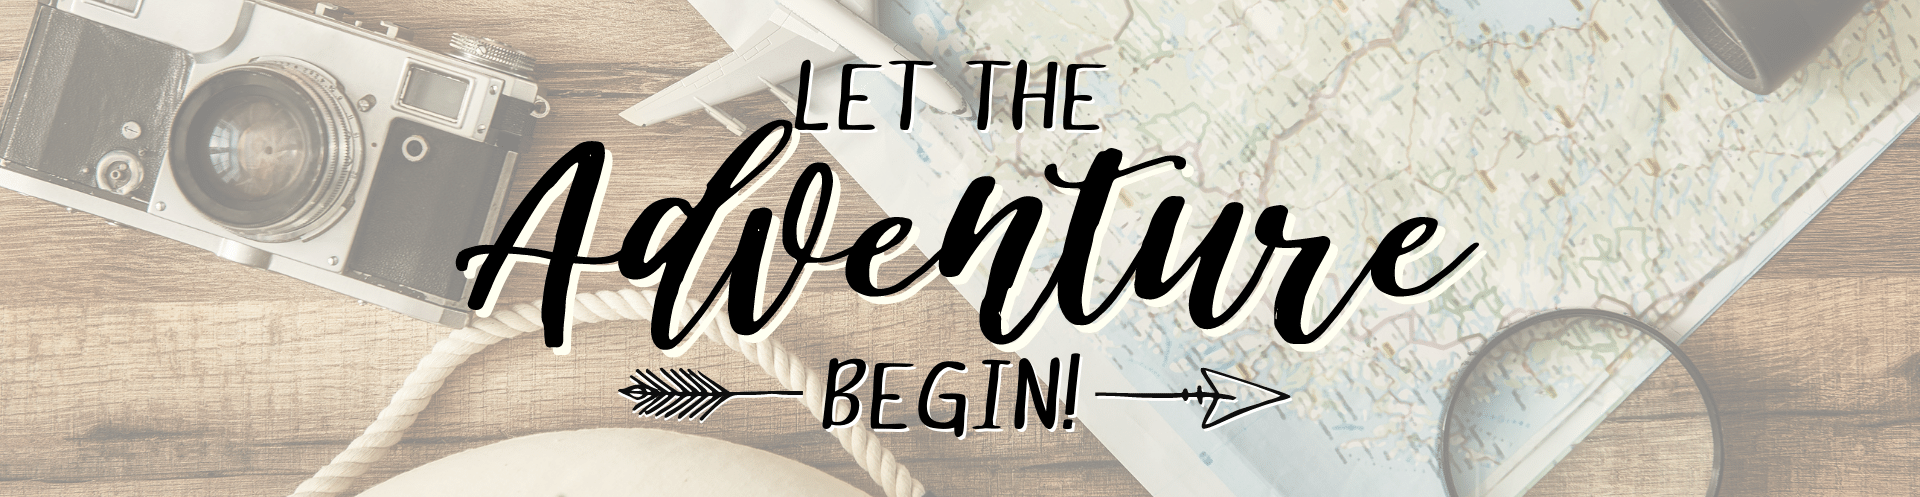 "Text reads ""Let the Adventure Begin"" on a background of travel imagery, including a map, model airplane, and a camera."